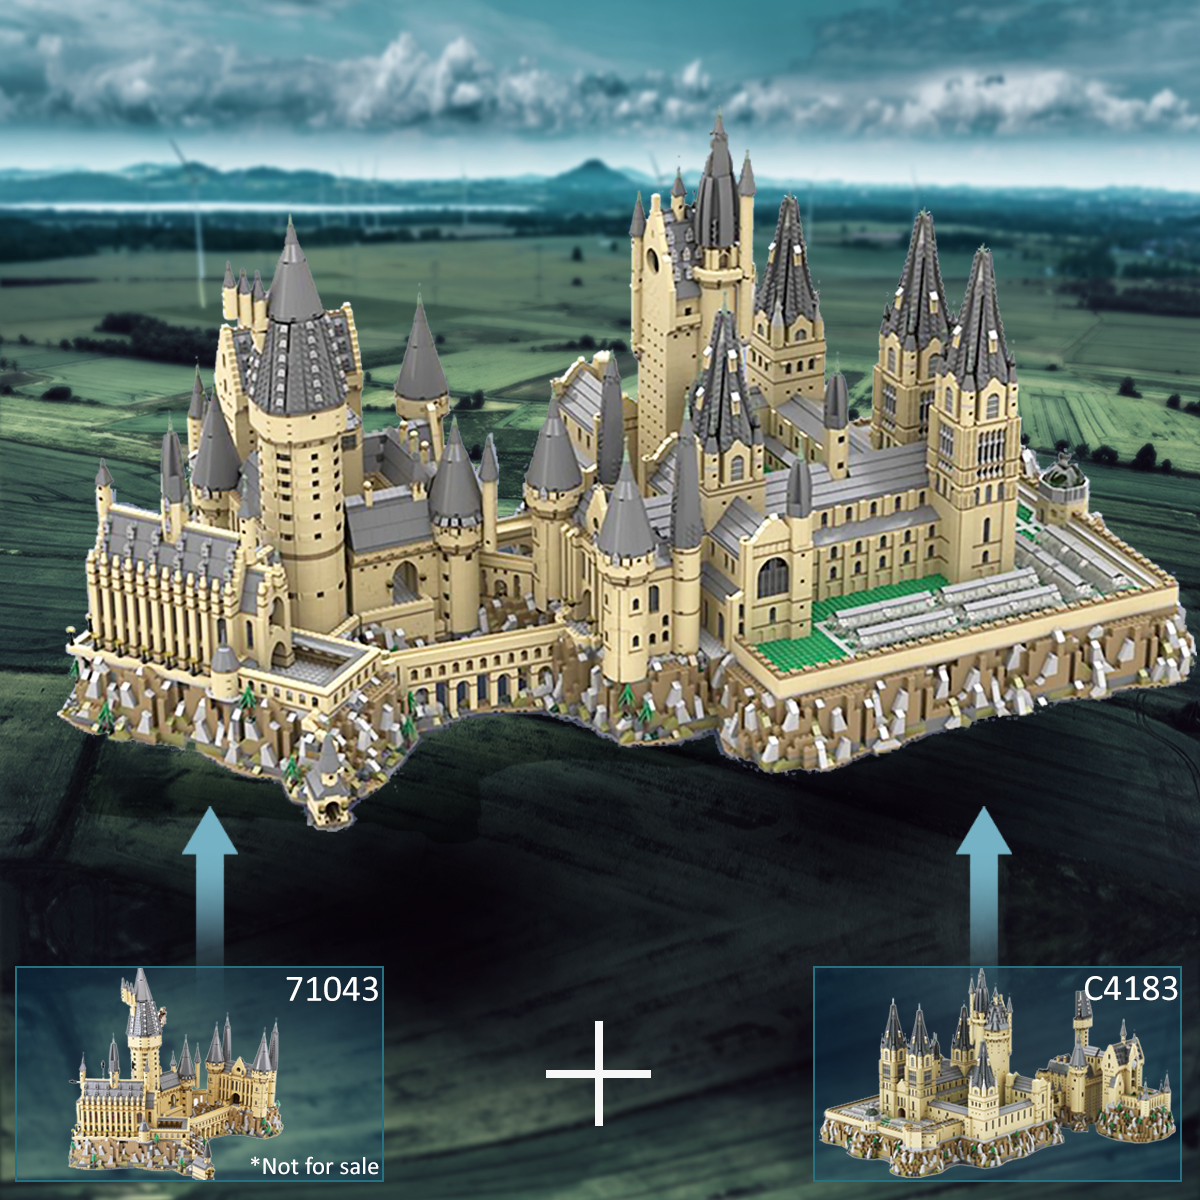 MOC-30884 Hogwart's Castle (71043) Epic Extension